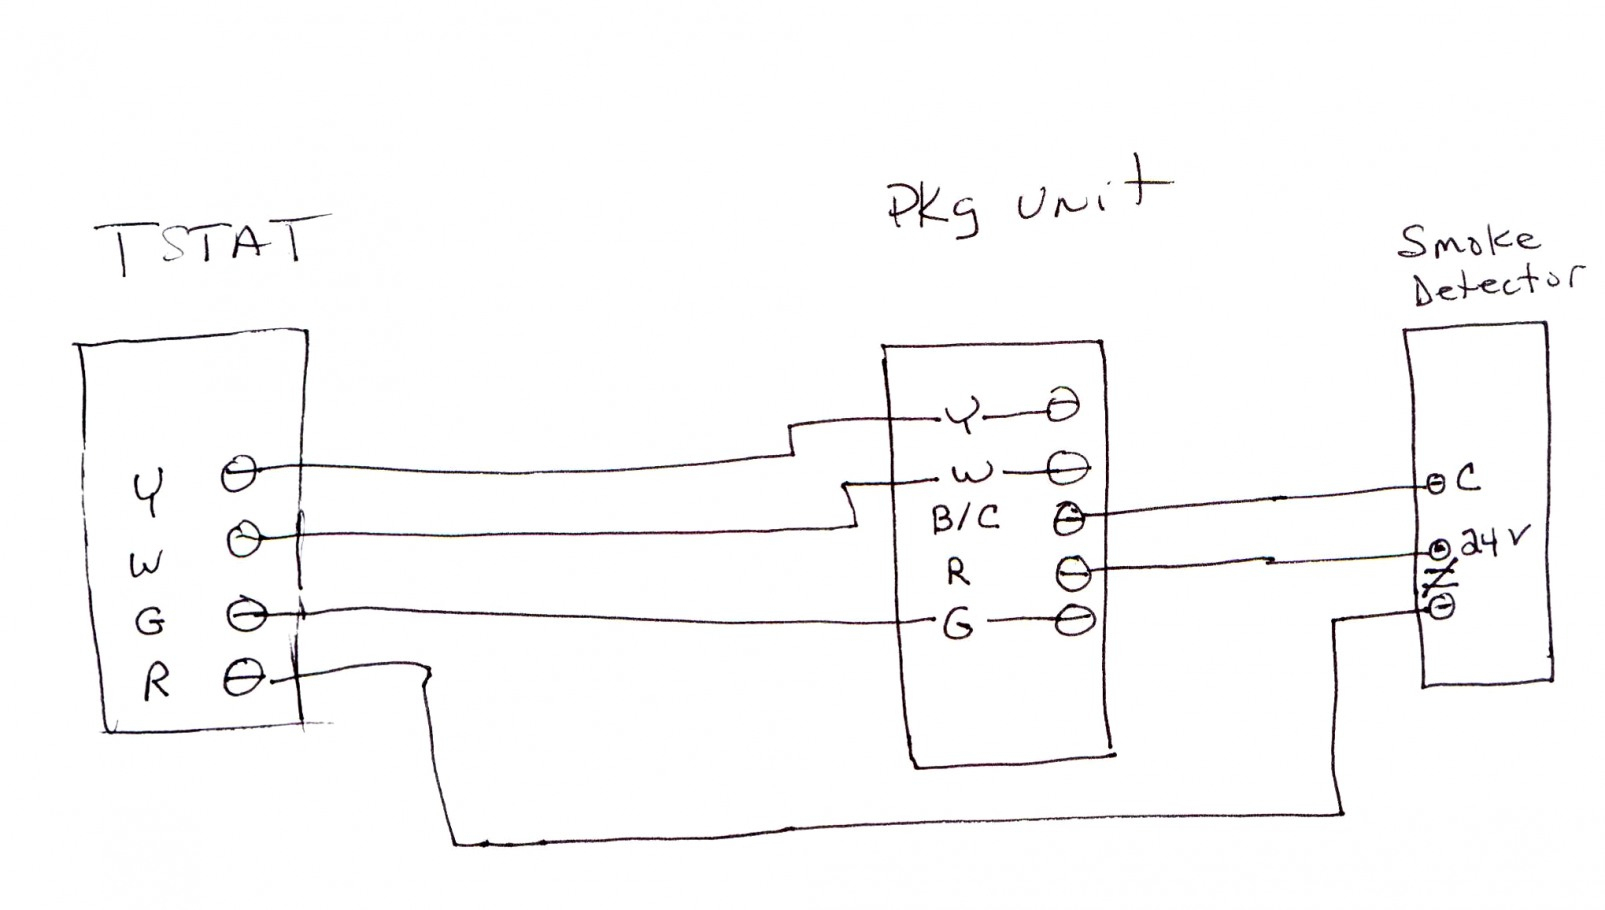 Wiring Diagrams Smoke Detectors - Wiring Diagrams Base - Nest Smoke Wiring Diagram